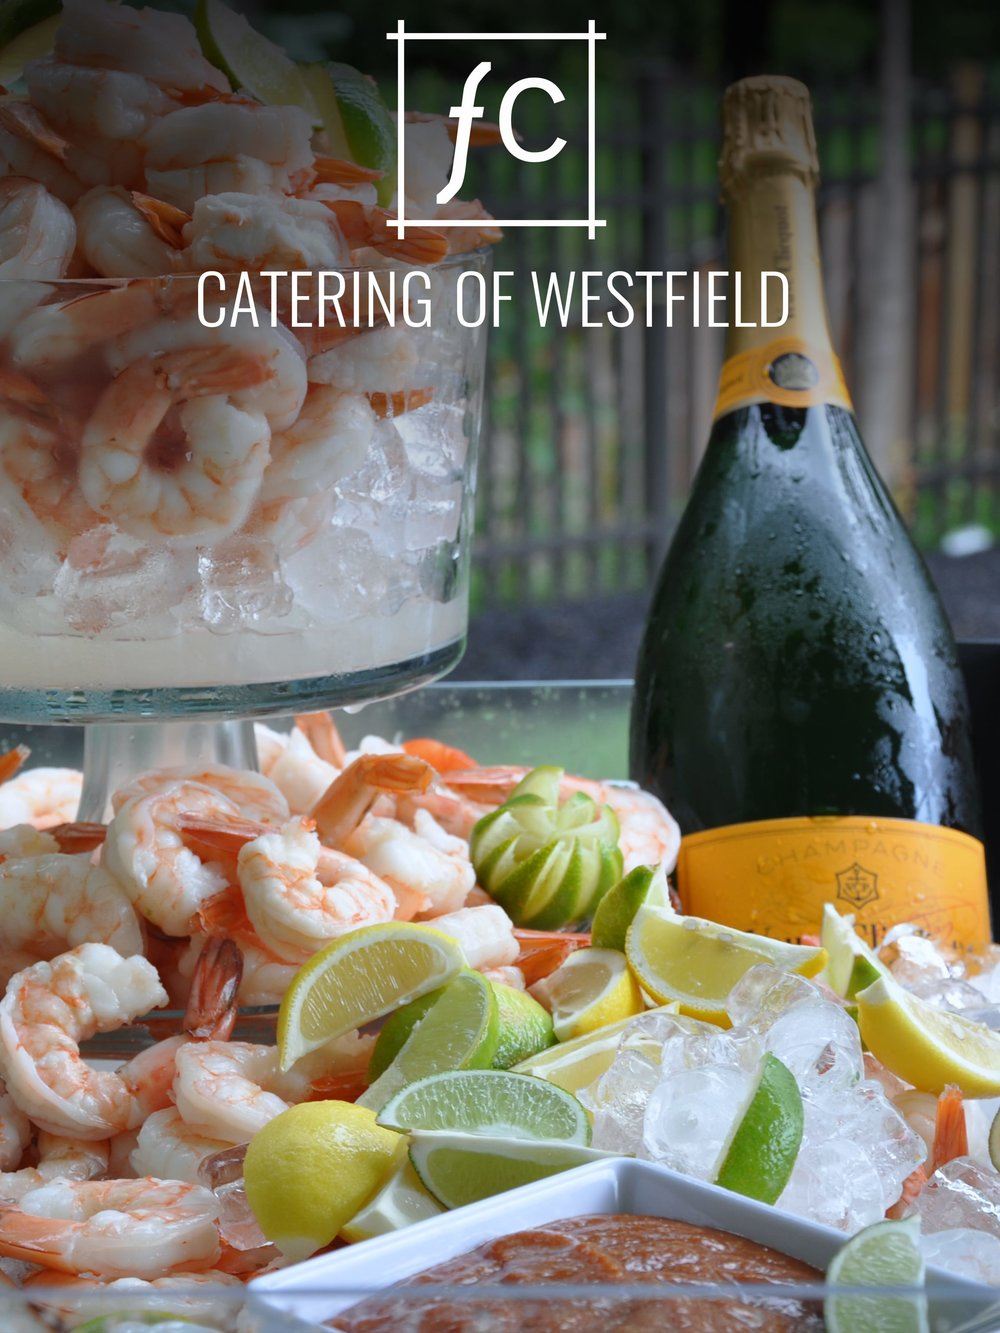 Feast Catering - Whether you're hosting a large party at a venue or an intimate dinner at your own home, Feast Catering will take care of every detail. We offer full-service catering and fine European cuisine.We cater for gatherings of virtually any size from small, intimate dinners &cocktail parties to events for up to three hundred guests,we can work in many different venues, customised to your own personal style.Whether your party is large or small, our event planners will guide you through every aspect of your event. We have the expertise to help you find the venue that best fits your unique needs. Our services include event planning, wait staff, rentals, flowers, photographers and music. We pride ourselves on building long lasting relationships with our clients and customers so that we can become part of the Feast Family.Our elegant, delicious food and professional staff will make your event one to remember providing you and your guests a Feast to remember.